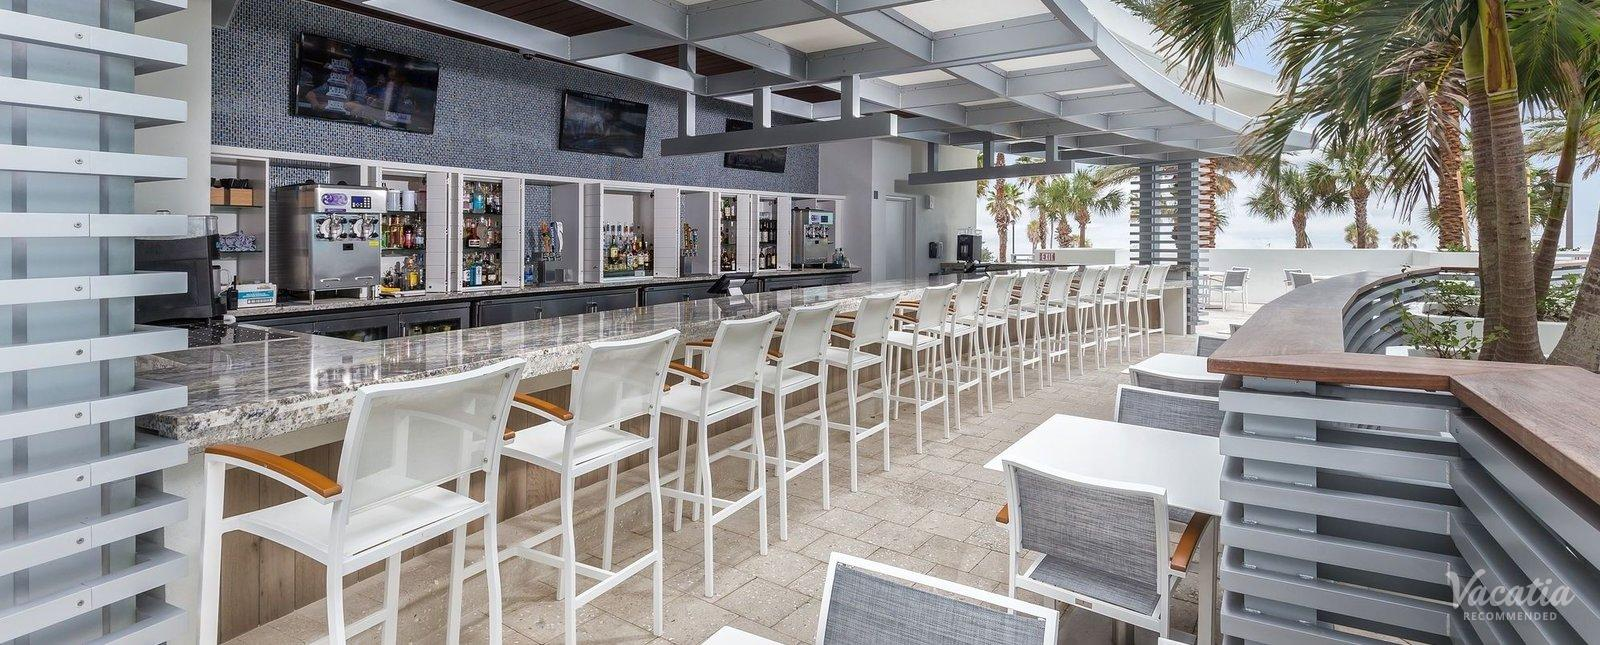 Wyndham Clearwater Beach Resort Poolside Bar & Grill